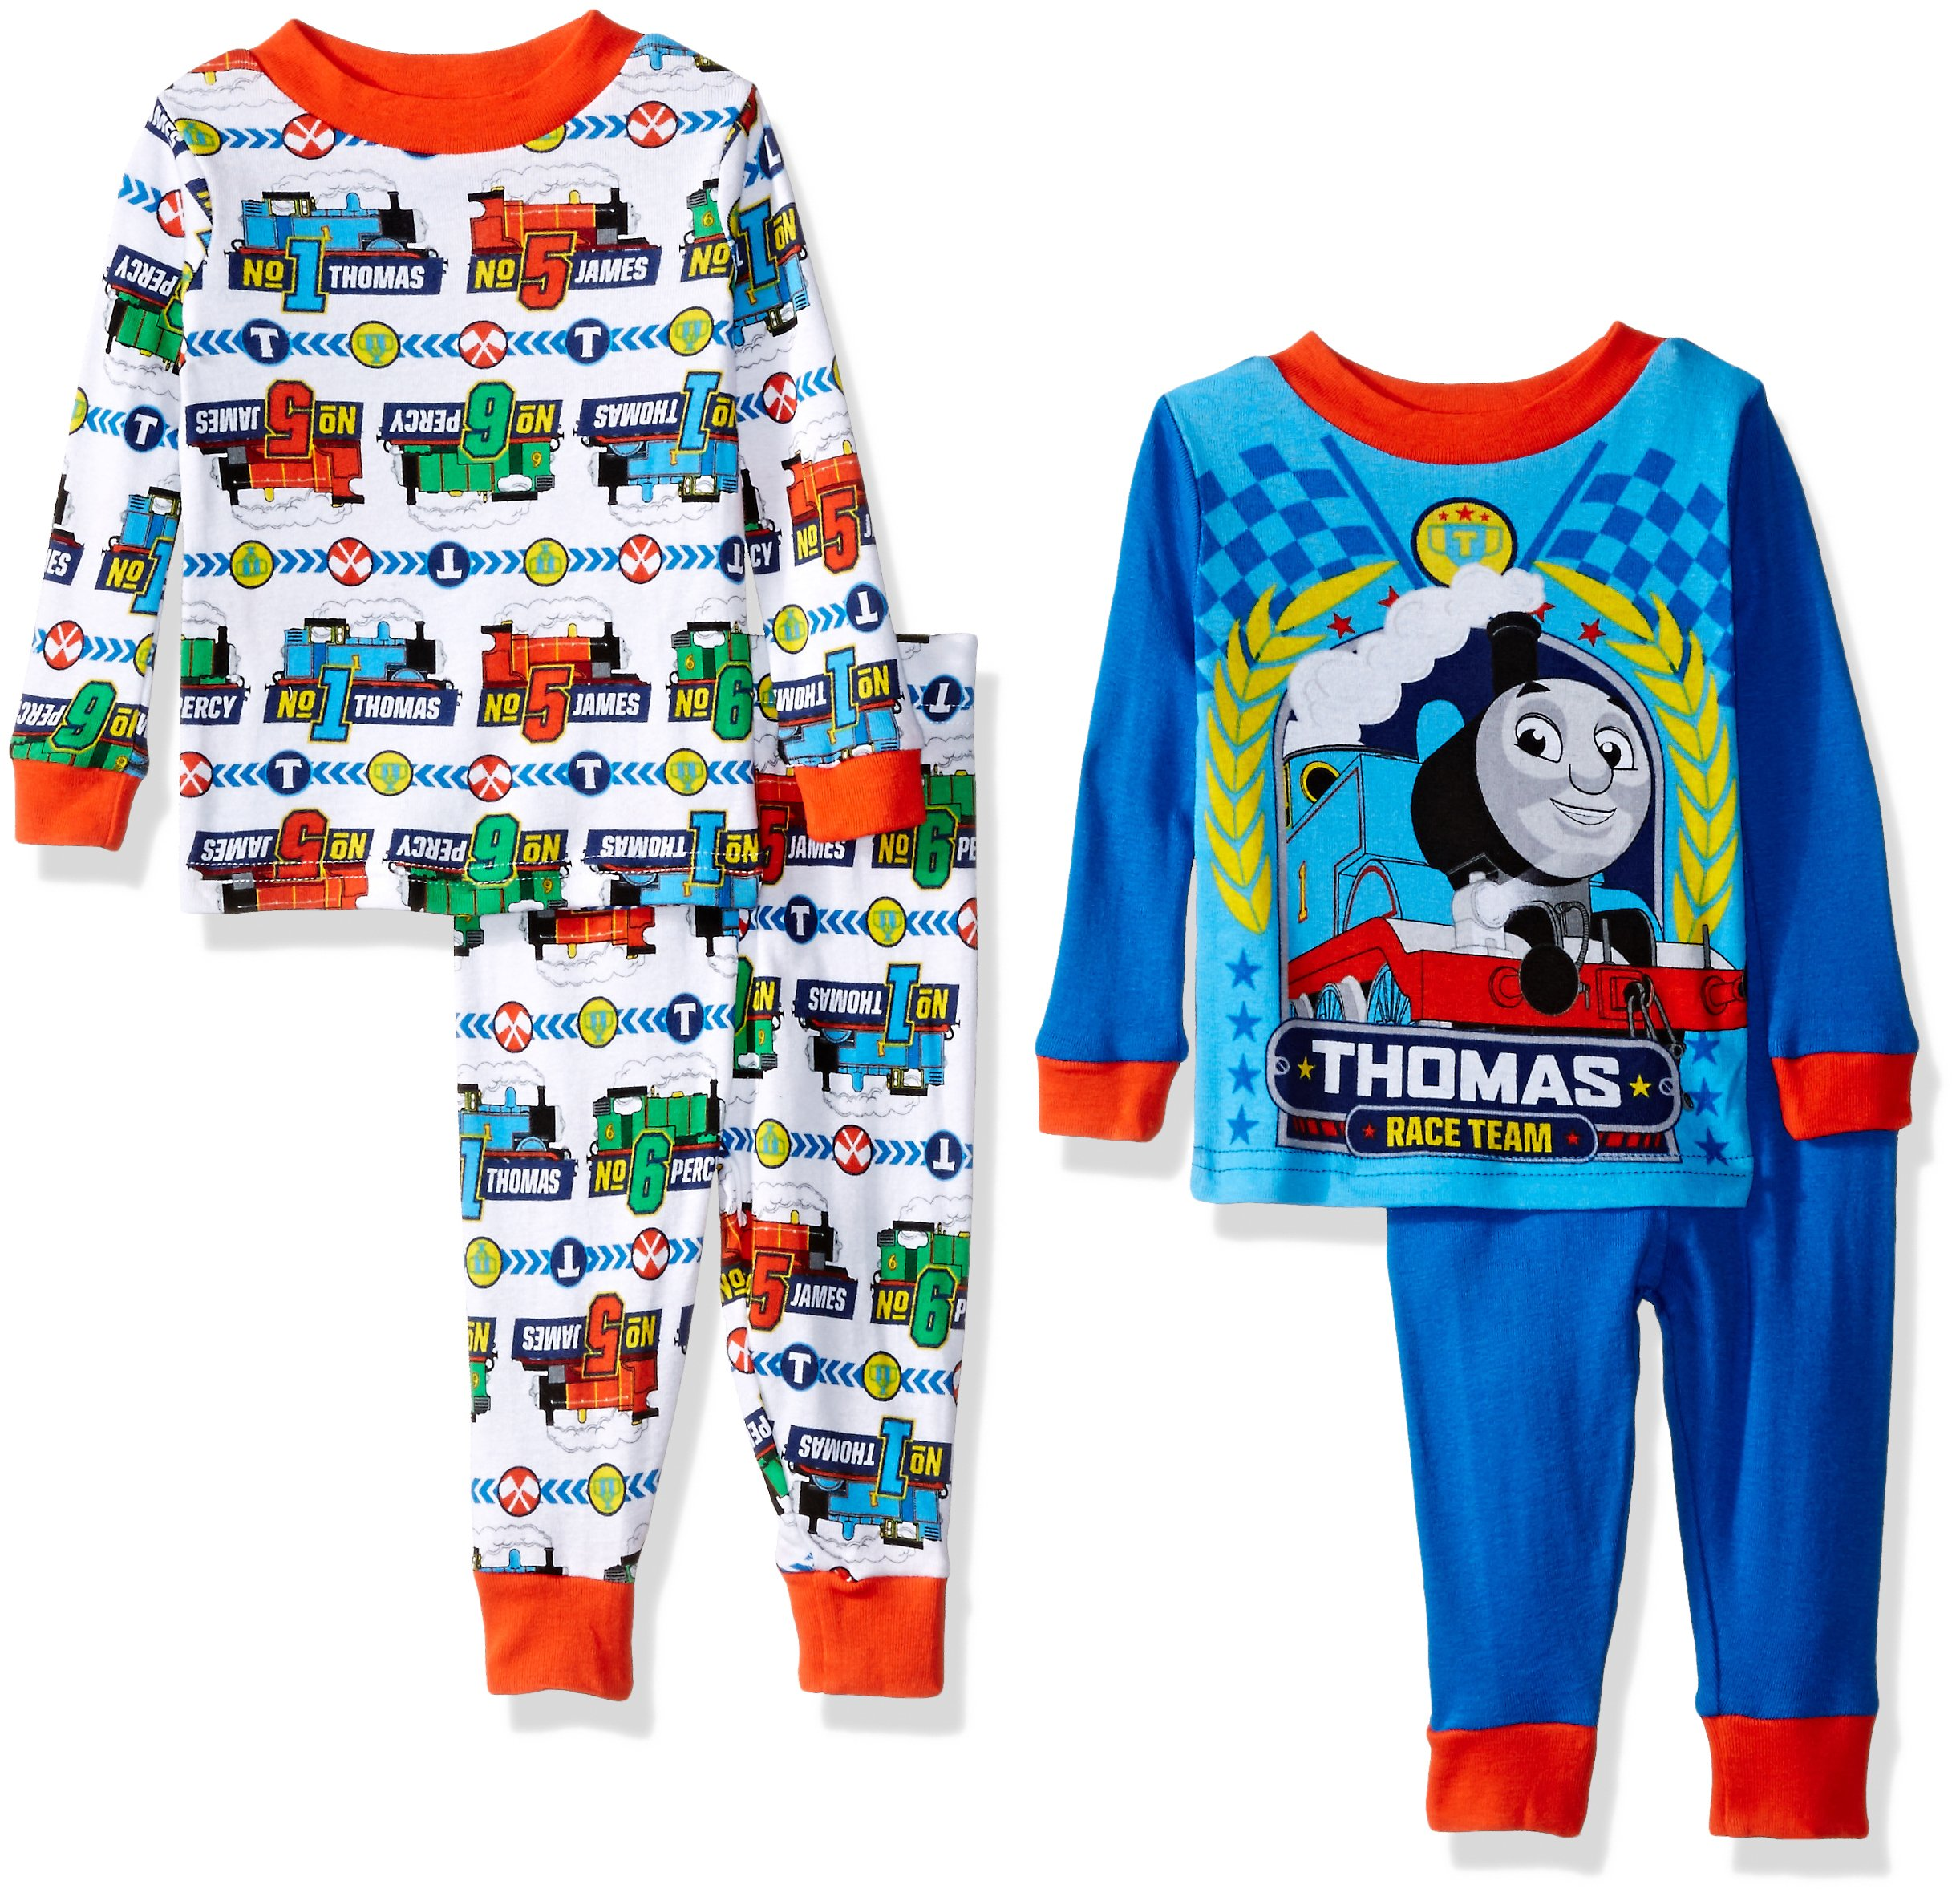 Thomas The Train Boys' 4-Piece Pajama Set, Blue/White, 18 Months